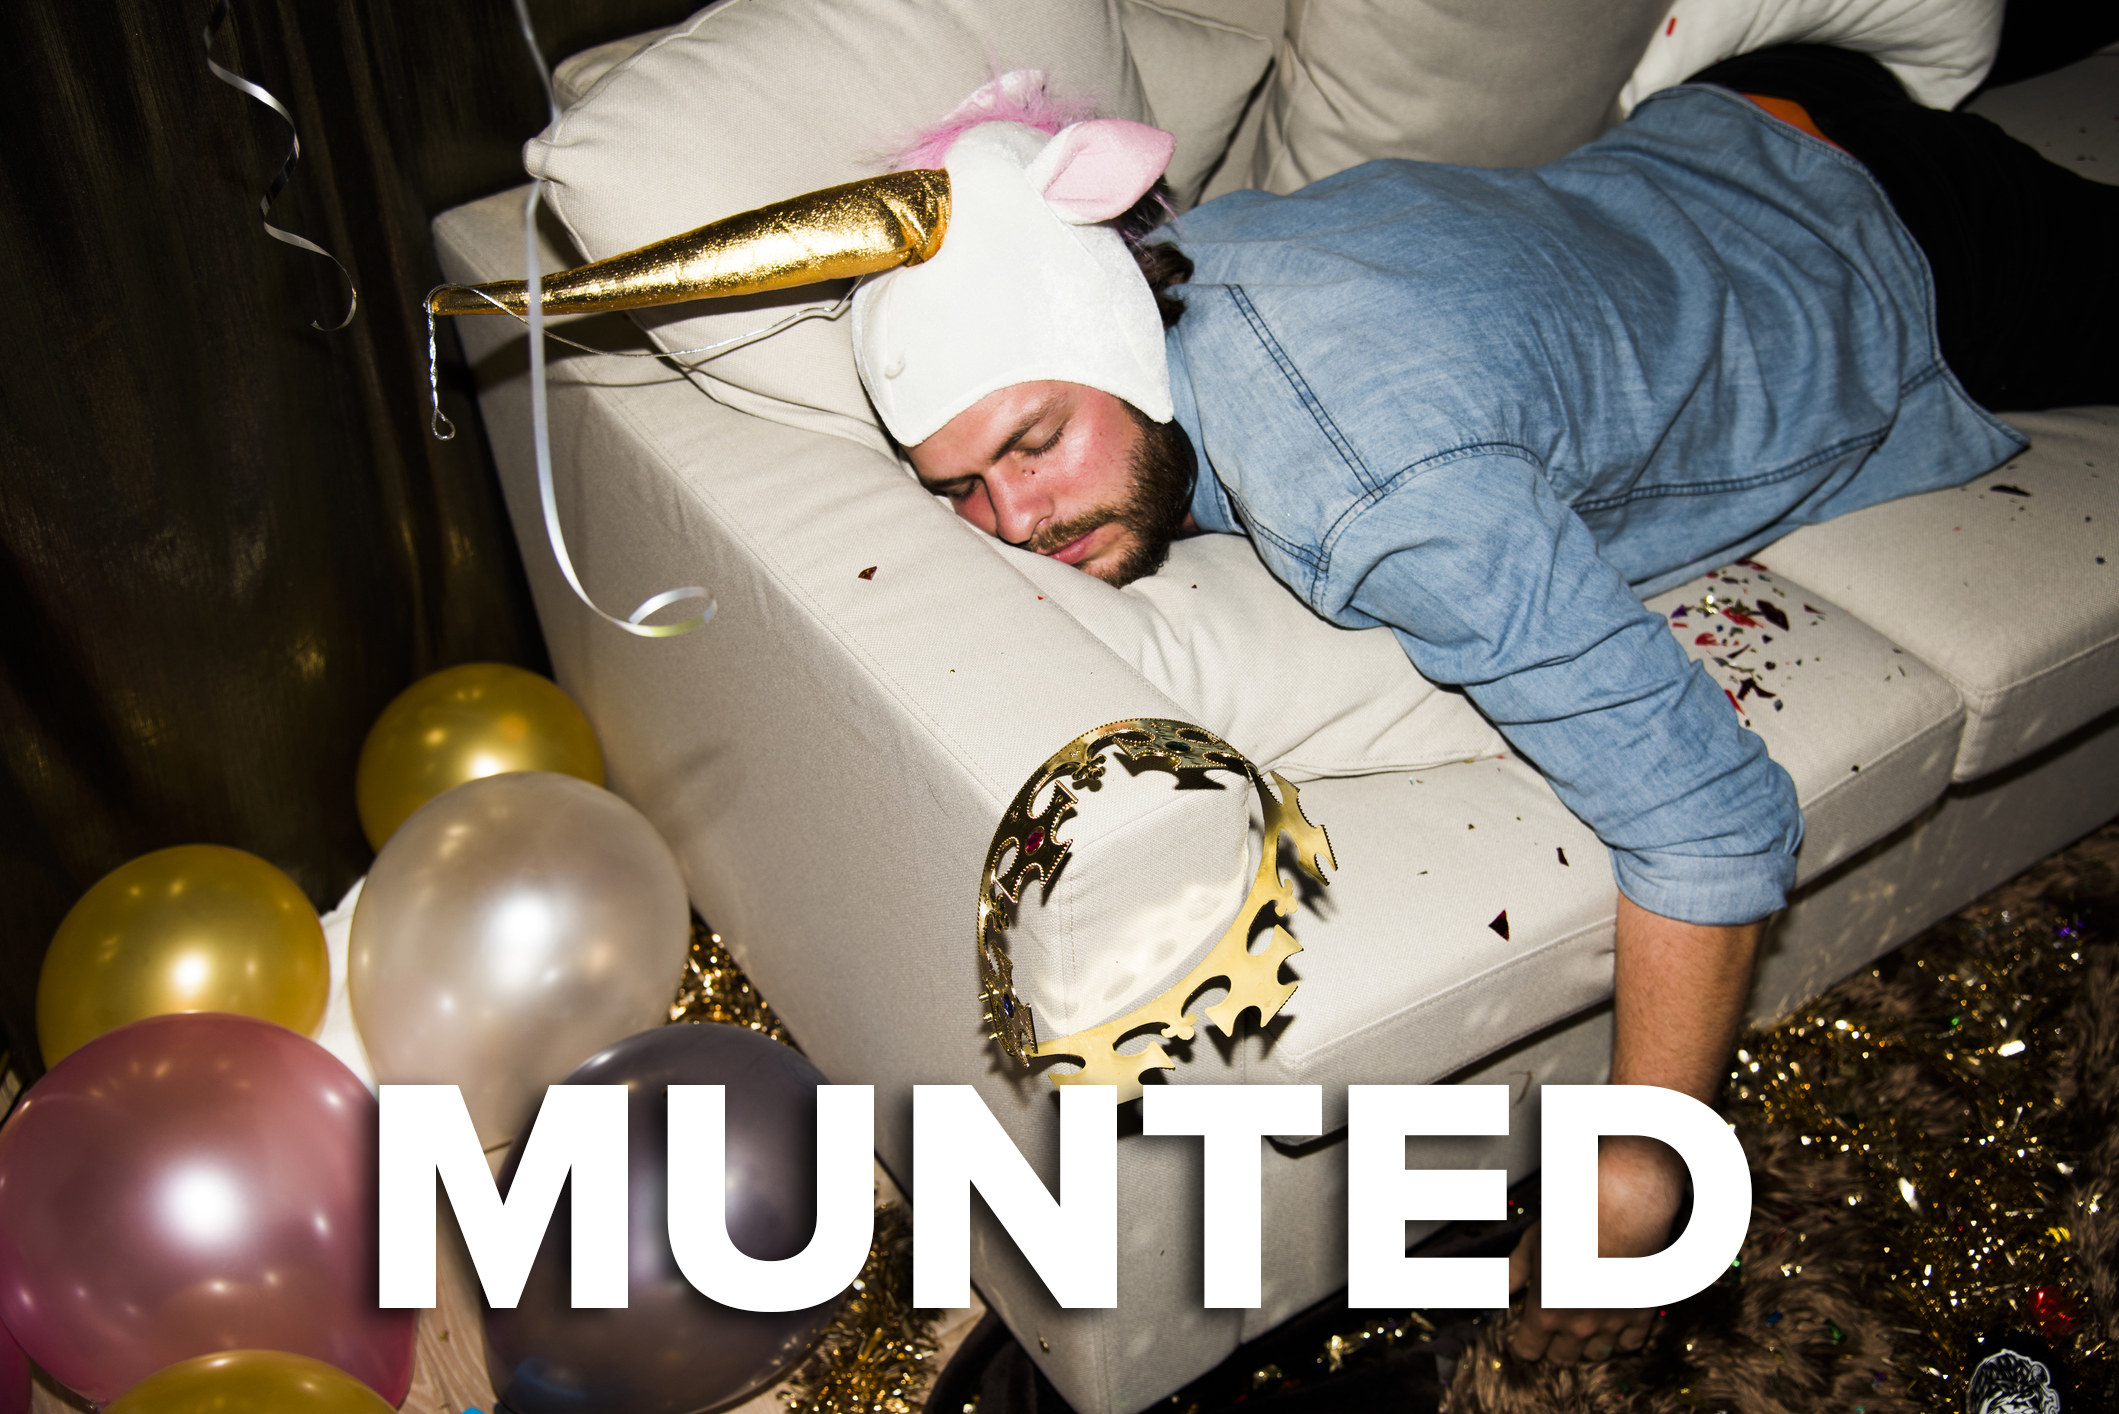 A man passed out on a couch; he is wearing a unicorn horn and there is glitter and balloons scattered around him